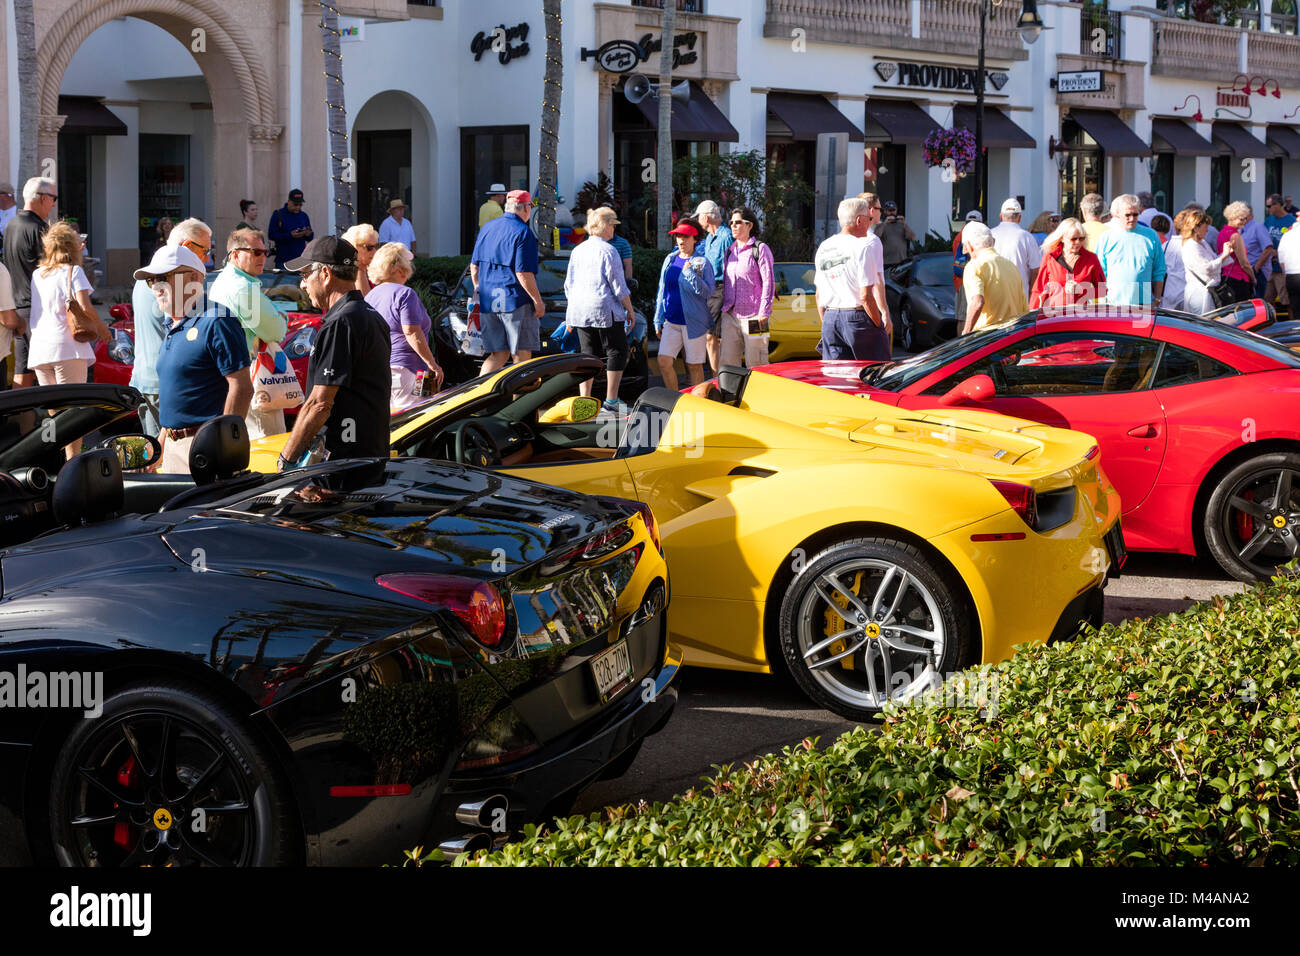 Ferraris on display at 'Cars on 5th' autoshow, Naples, Florida, USA - Stock Image